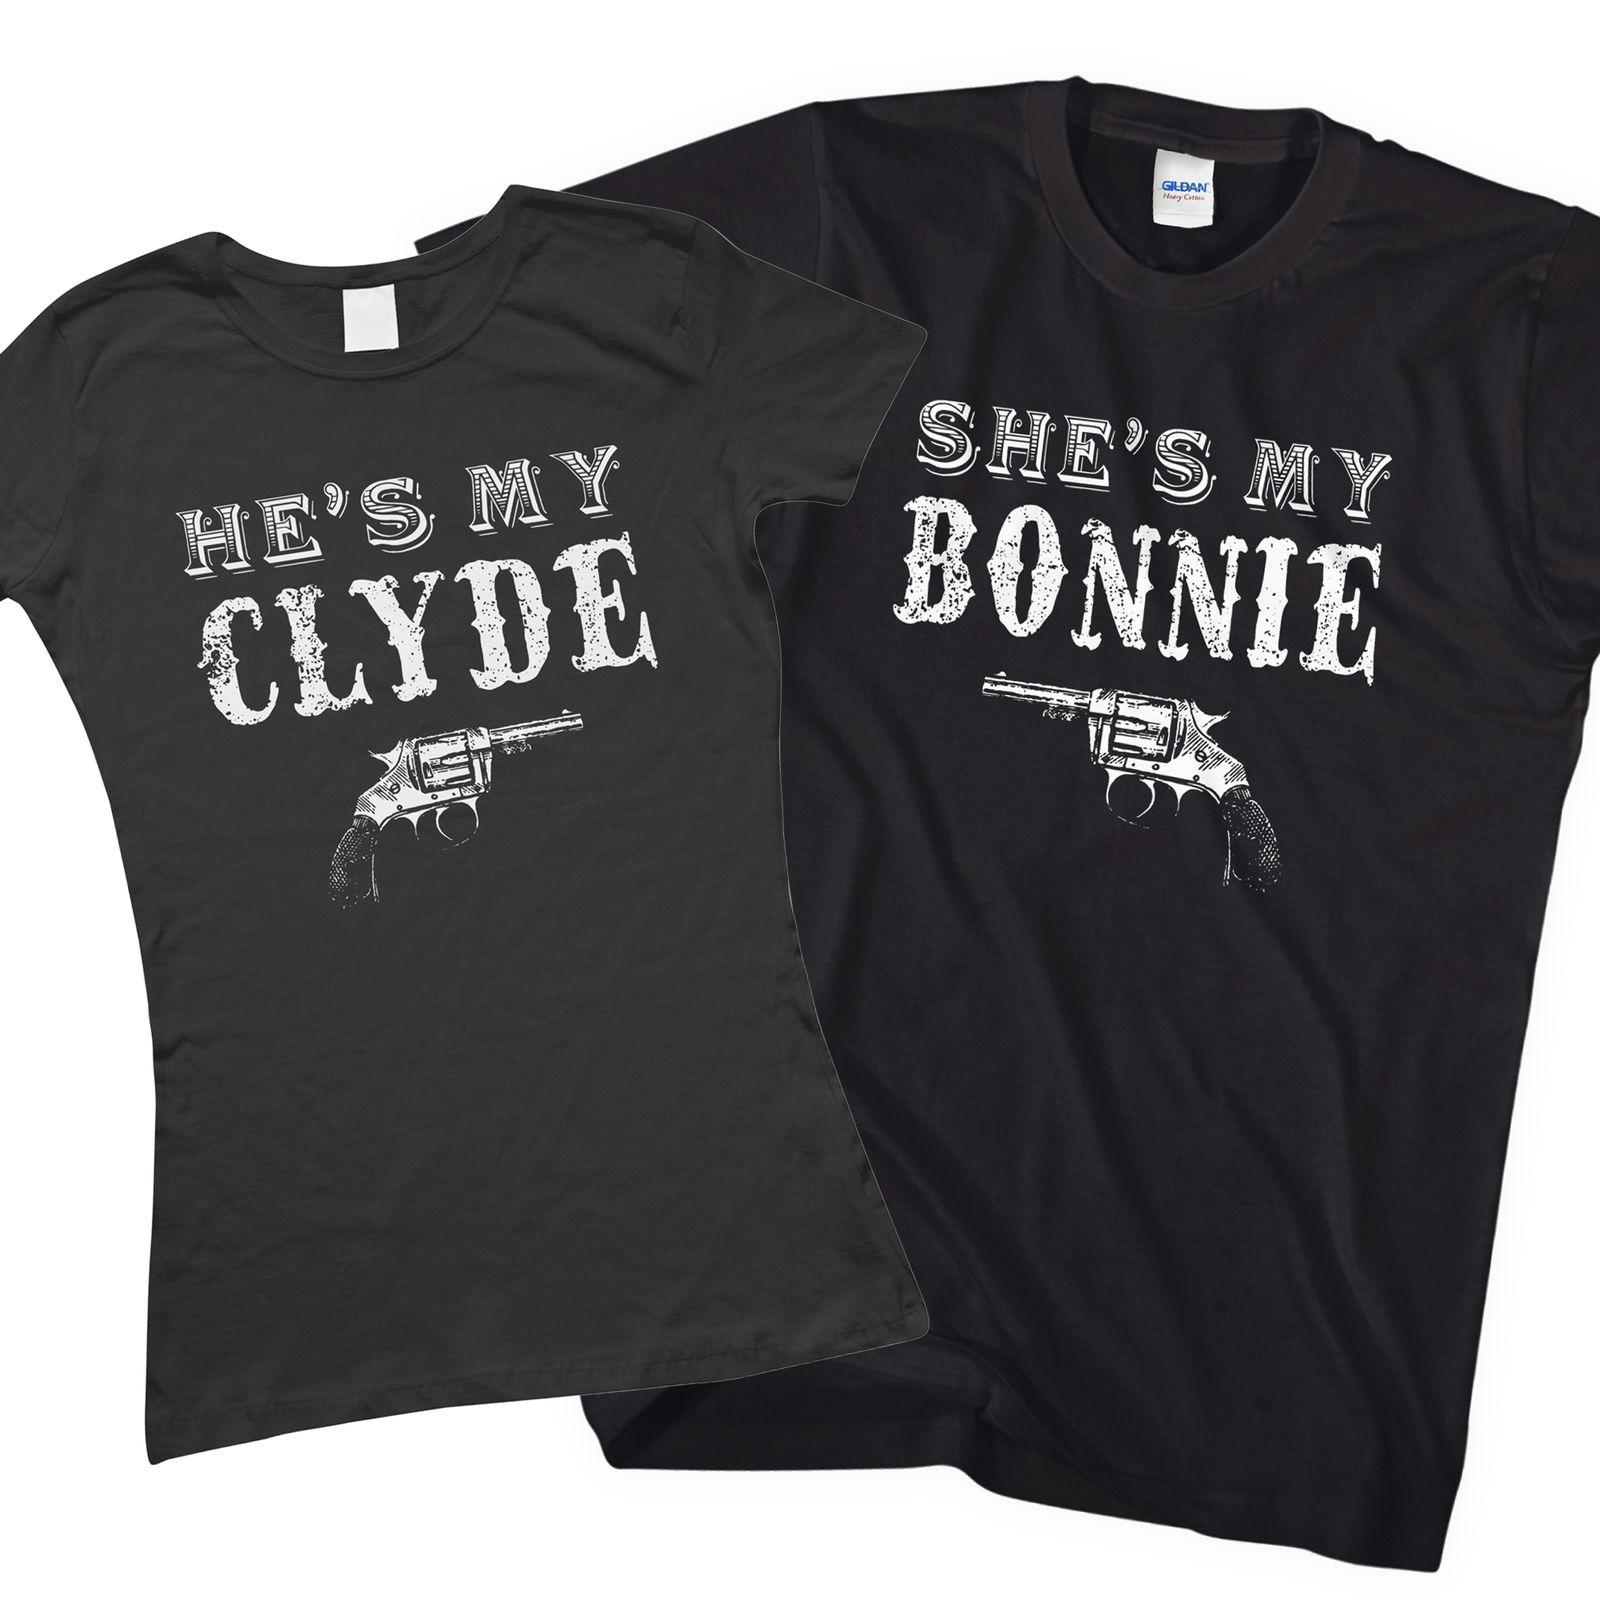 186b969d69 Bonnie And Clyde Matching Couples T Shirt Valentines Day Gift For Boyfriend  L174 Cool Casual Pride T Shirt Men Unisex New Fashion Funny Rude T Shirts  Trendy ...